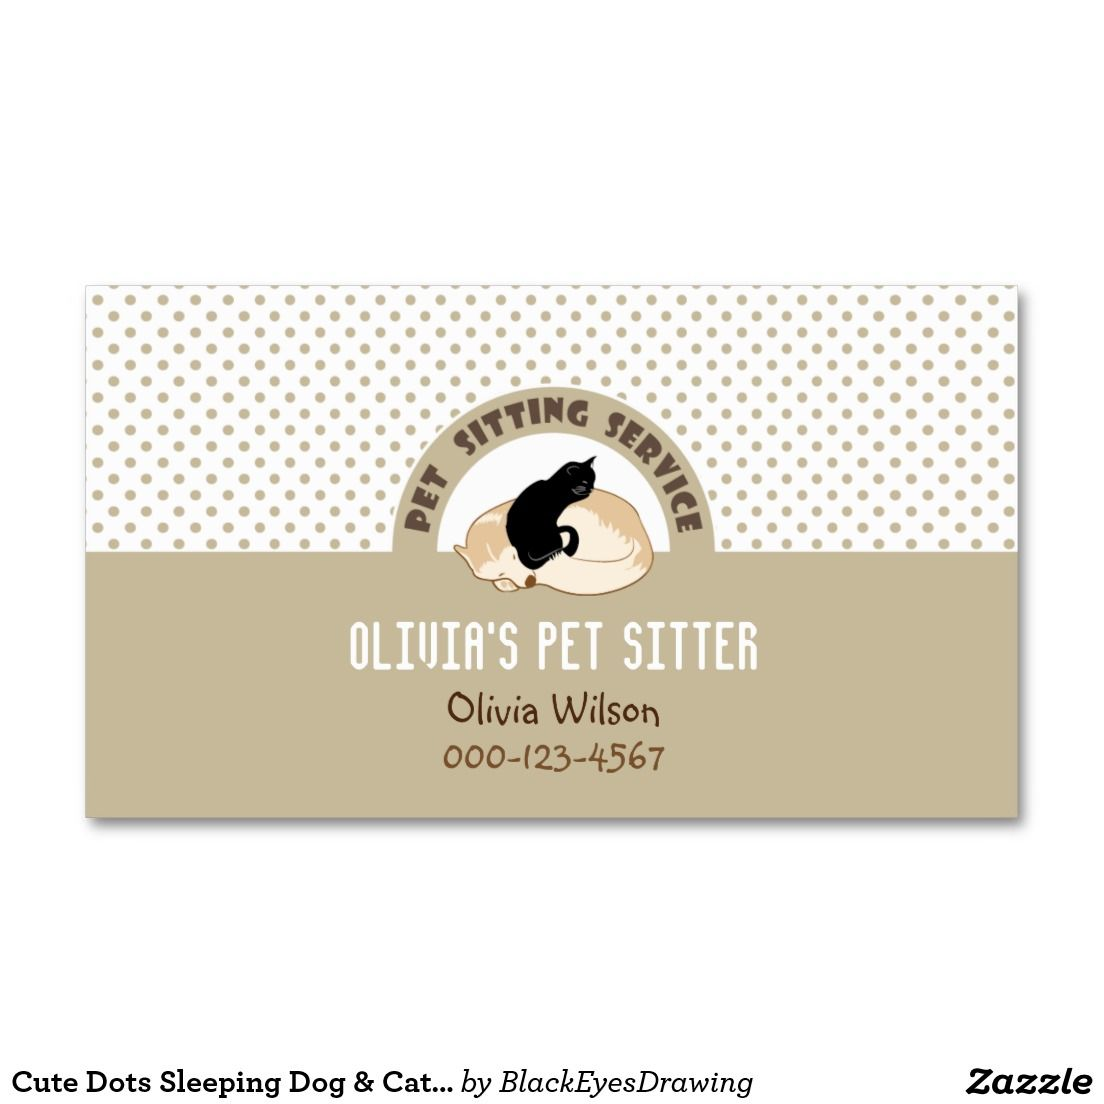 Cute Dots Sleeping Dog & Cat Pet Sitting Service Business Card | Pet ...